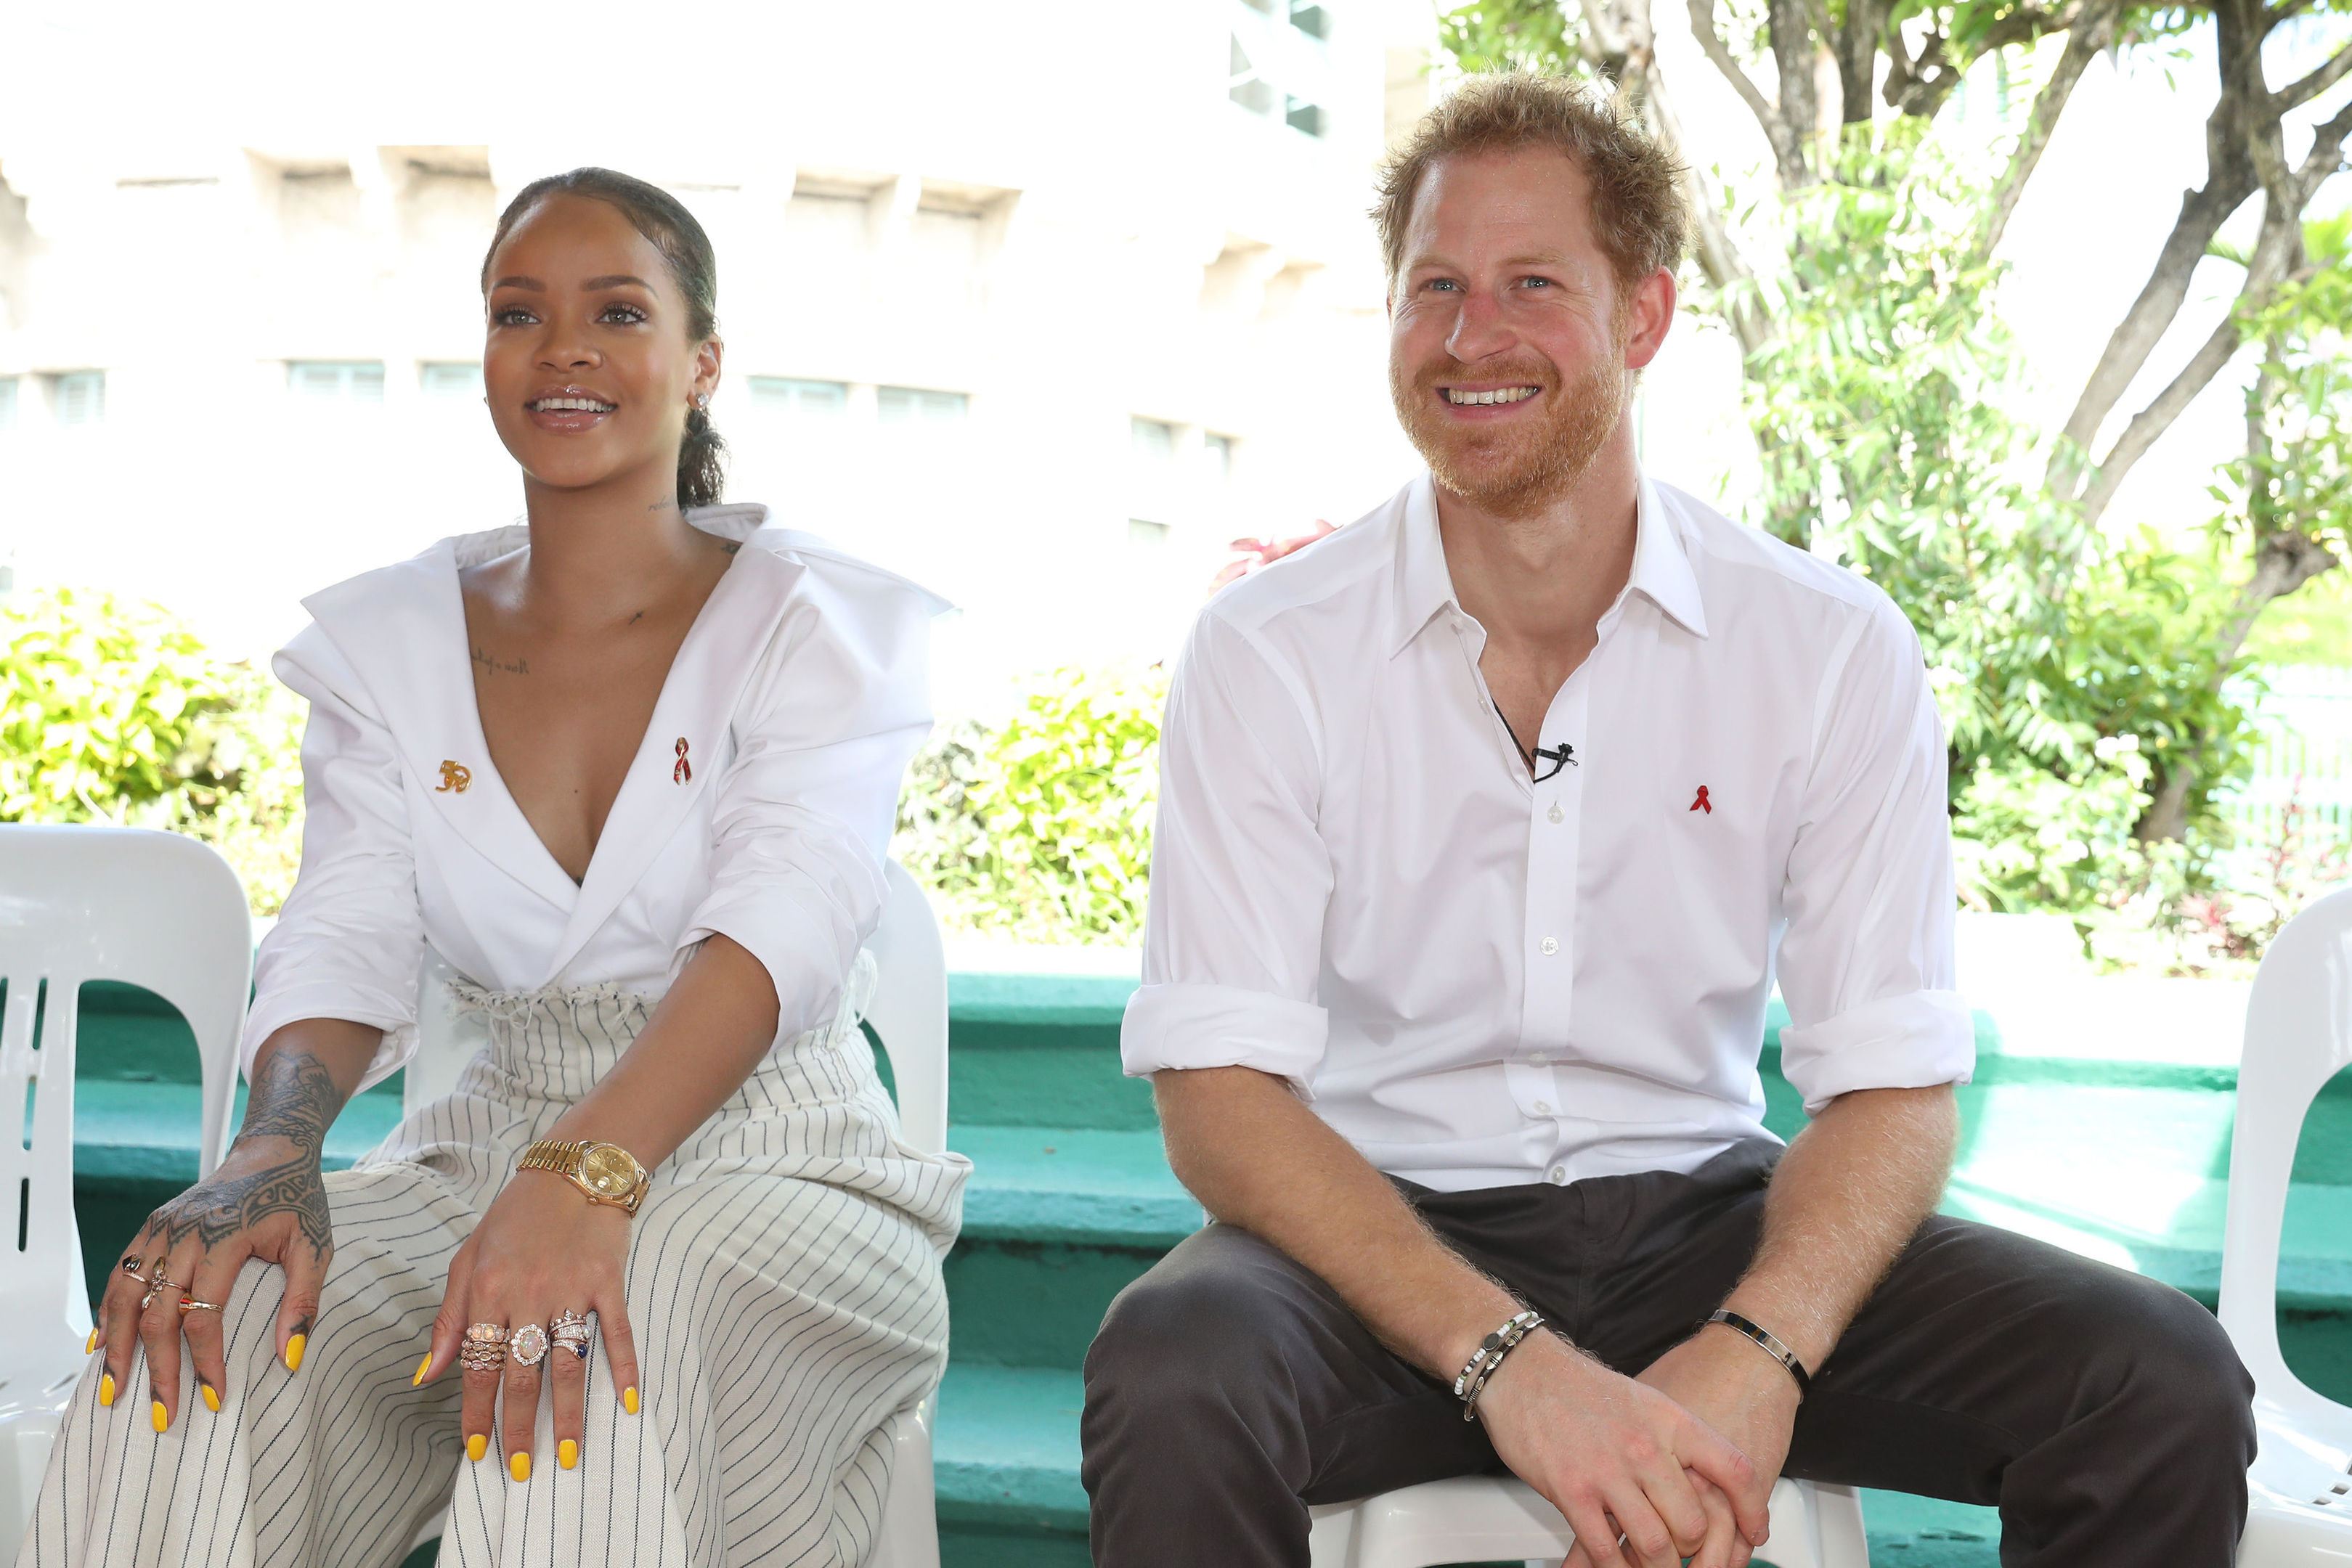 Snger, Rihanna and Prince Harry on stage, at the 'Man Aware' event held by the Barbados National HIV/AIDS Commission in Bridgetown, Barbados, during his tour of the Caribbean.